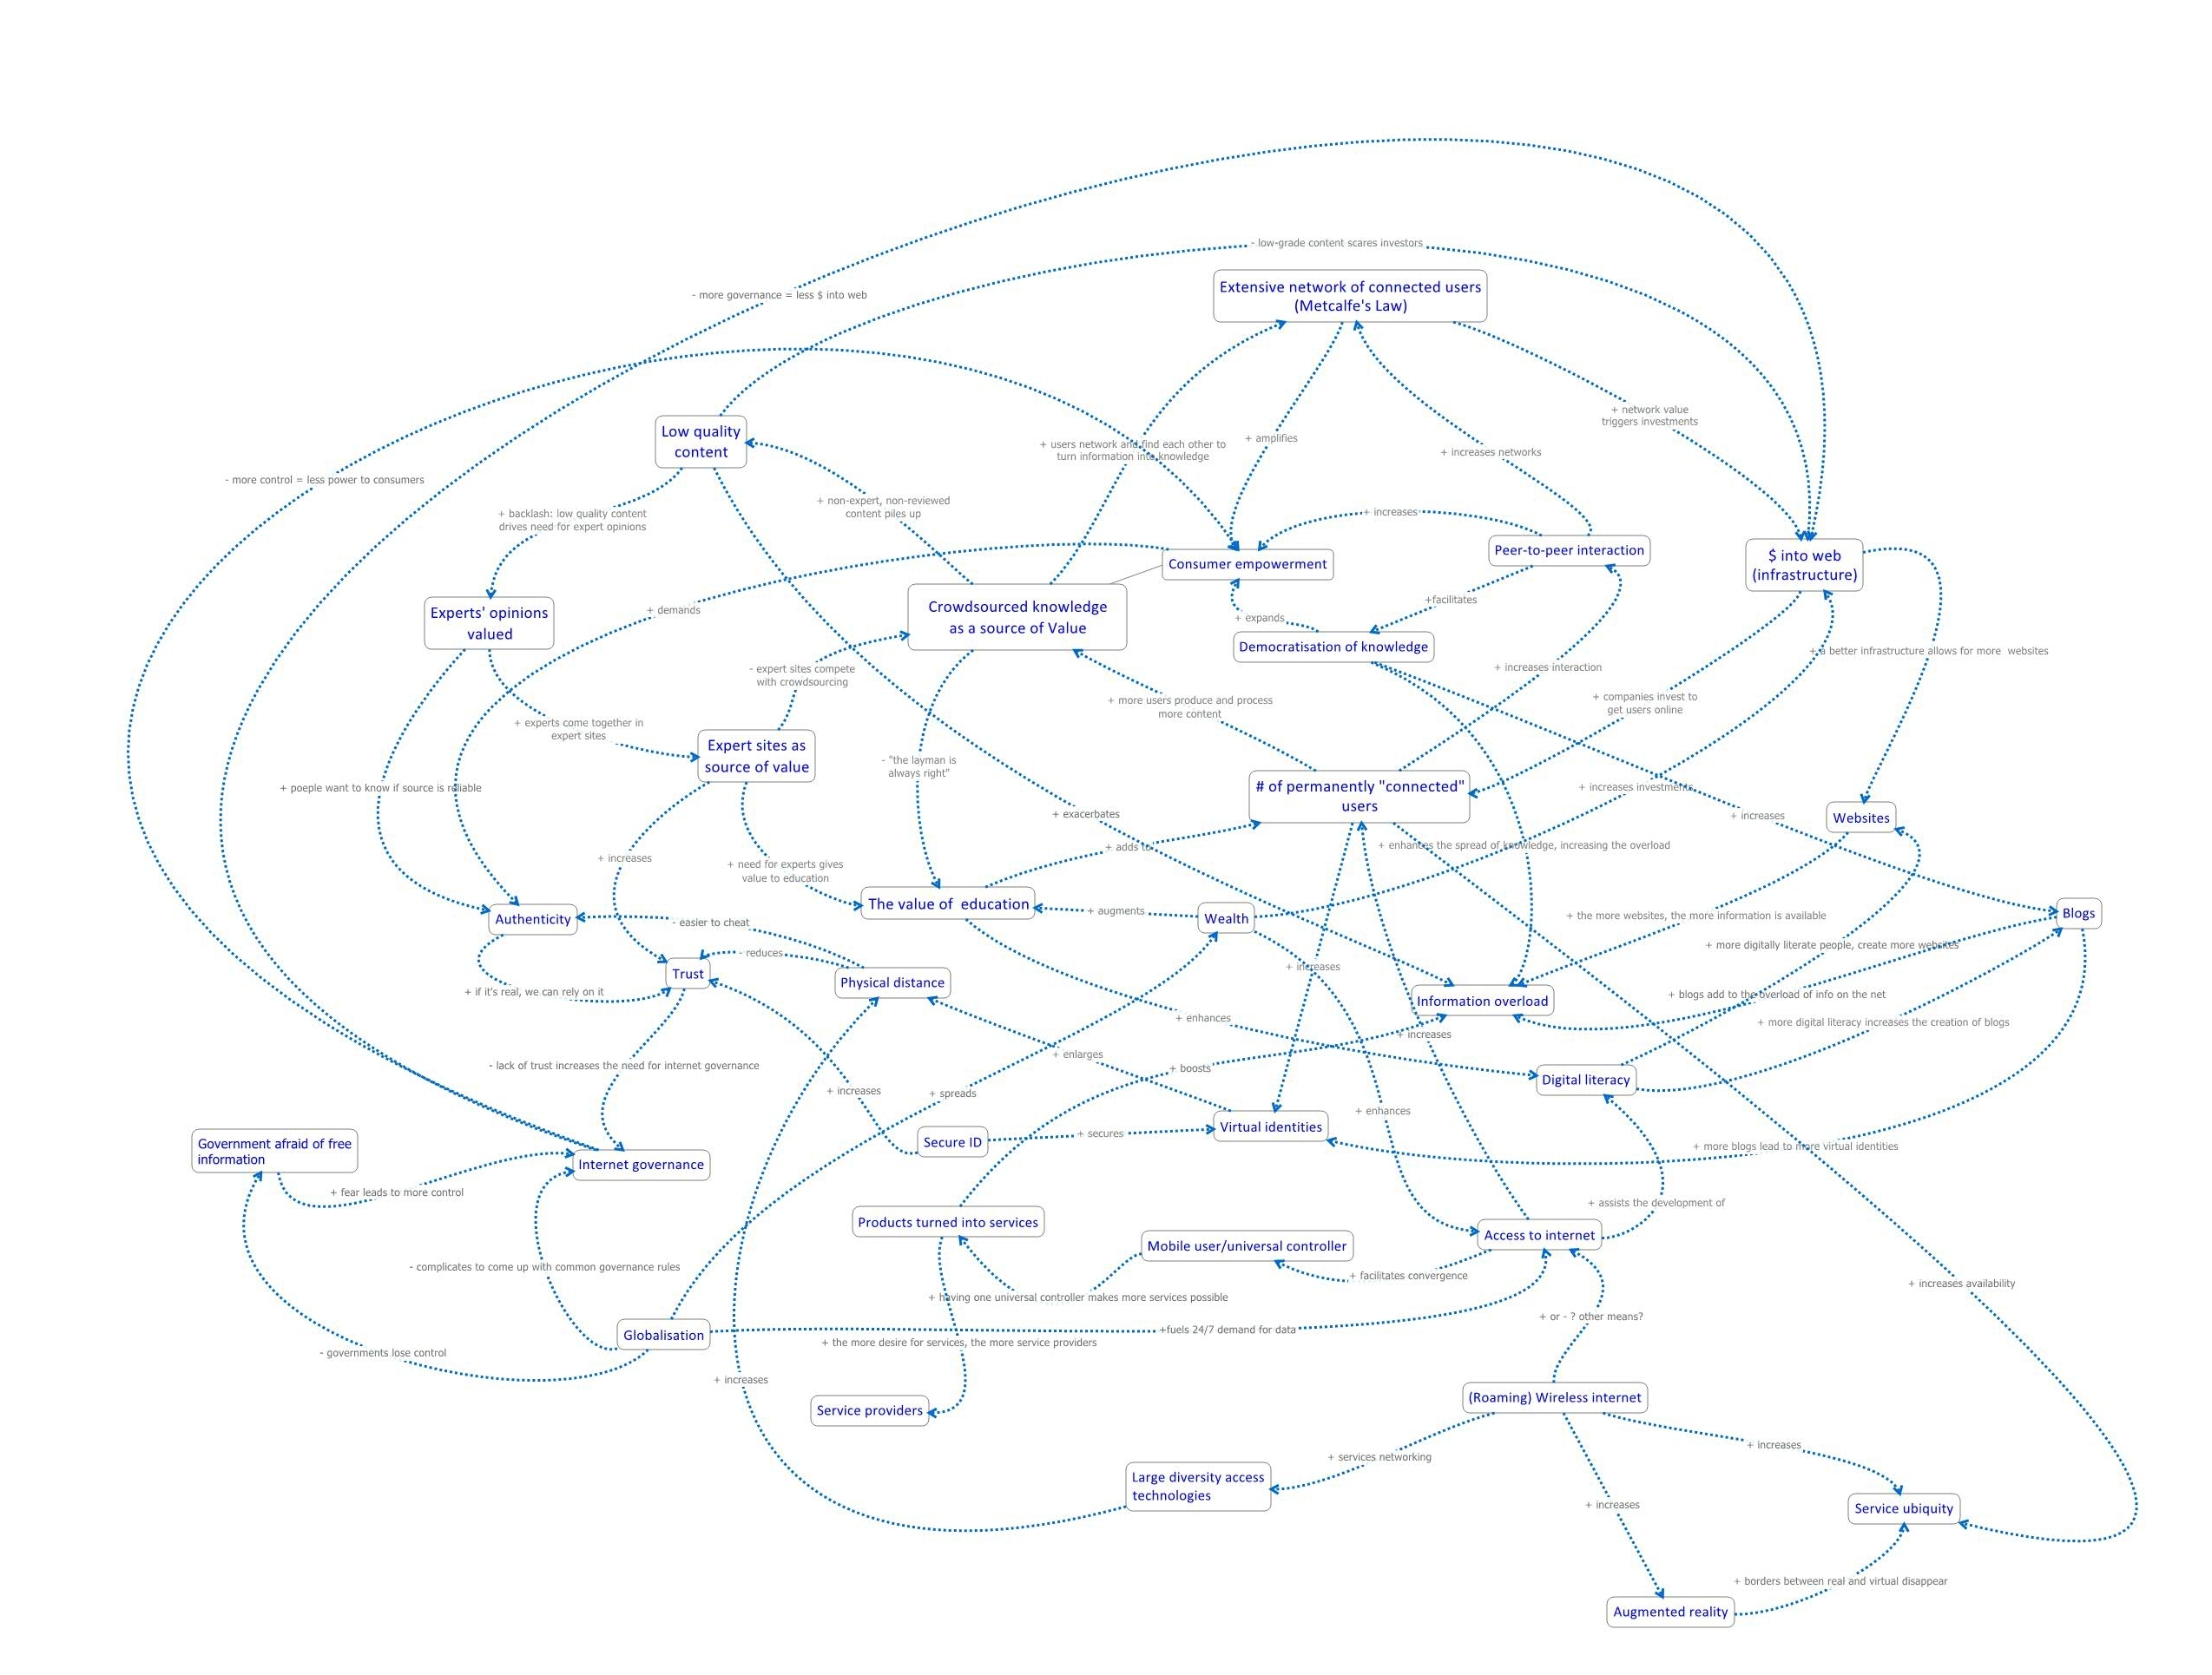 SystemsDiagram Corp Websites 091007.jpg